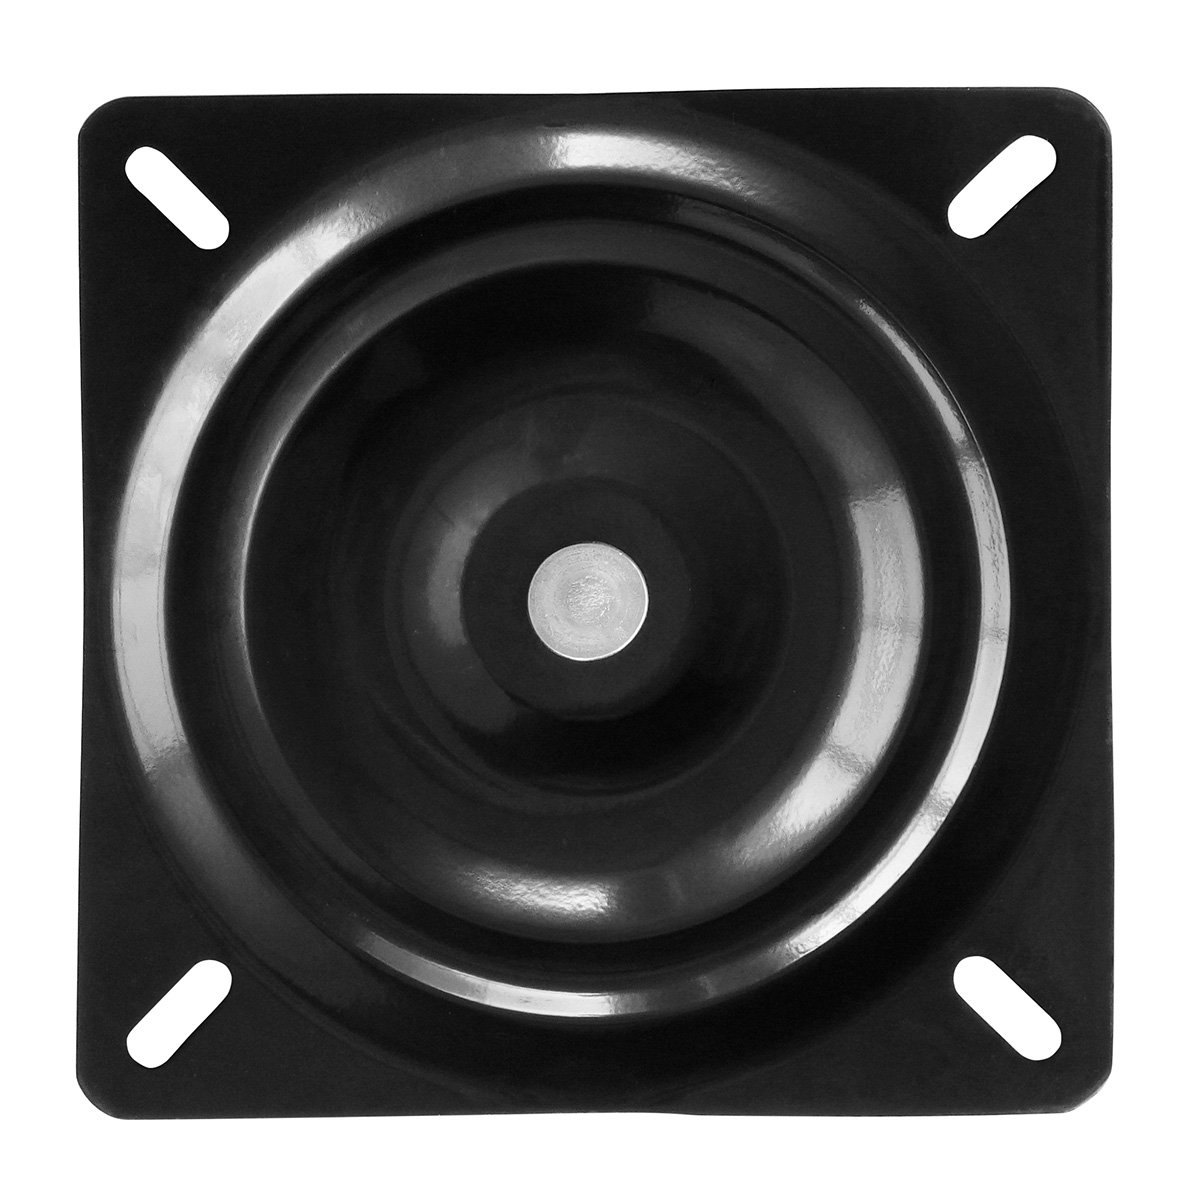 MySit 8'' Swivel Plate Mechanism for Recliner Chair & Bar Stool Square Swivel Furniture Replacement - Ball Bearing (SwivelPlate_8) by MySit